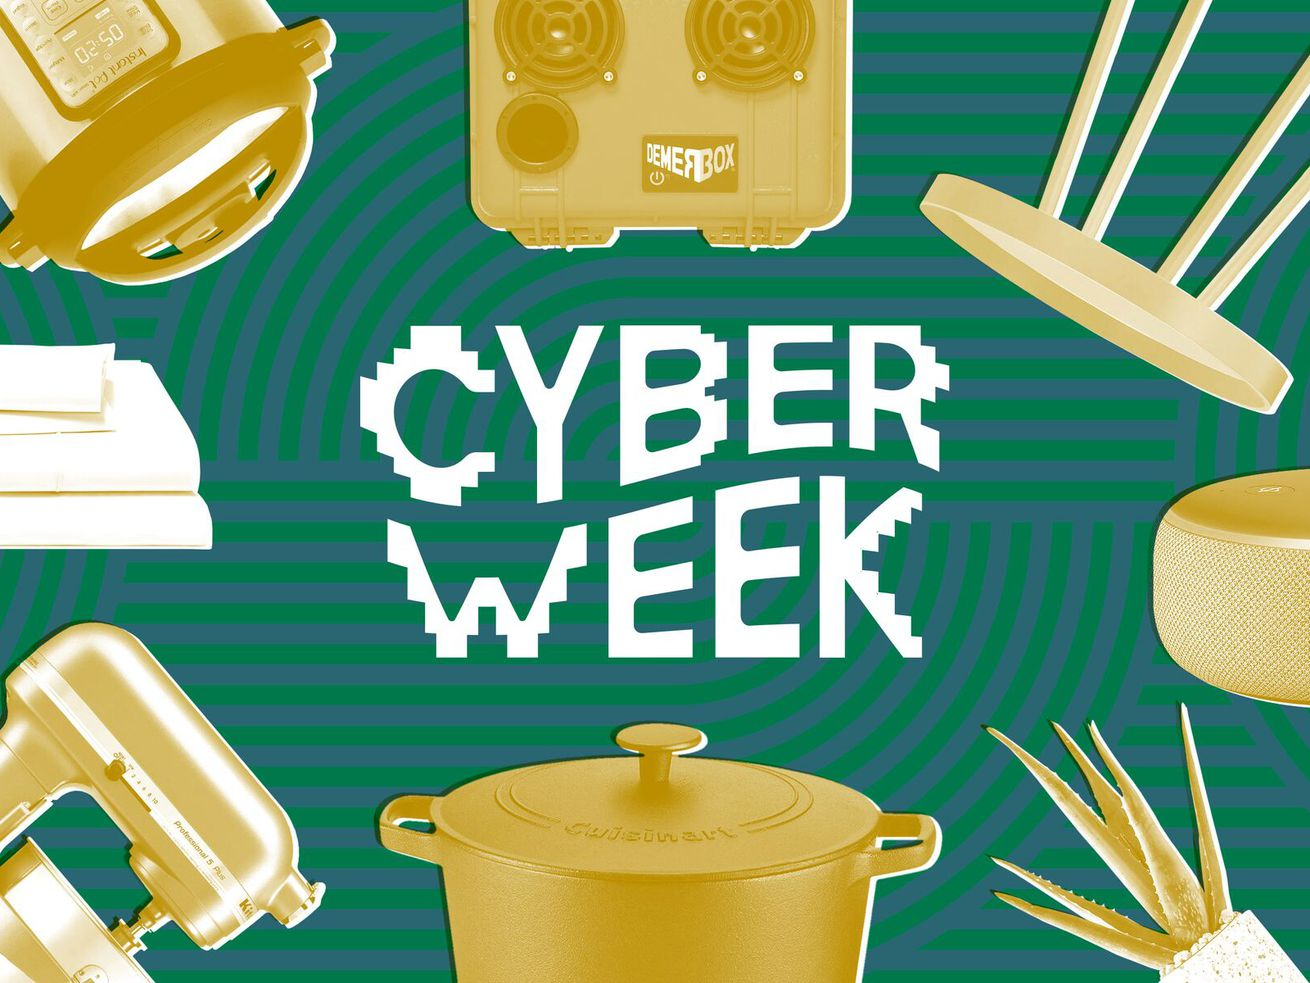 The Cyber Week furniture deals worth shopping now